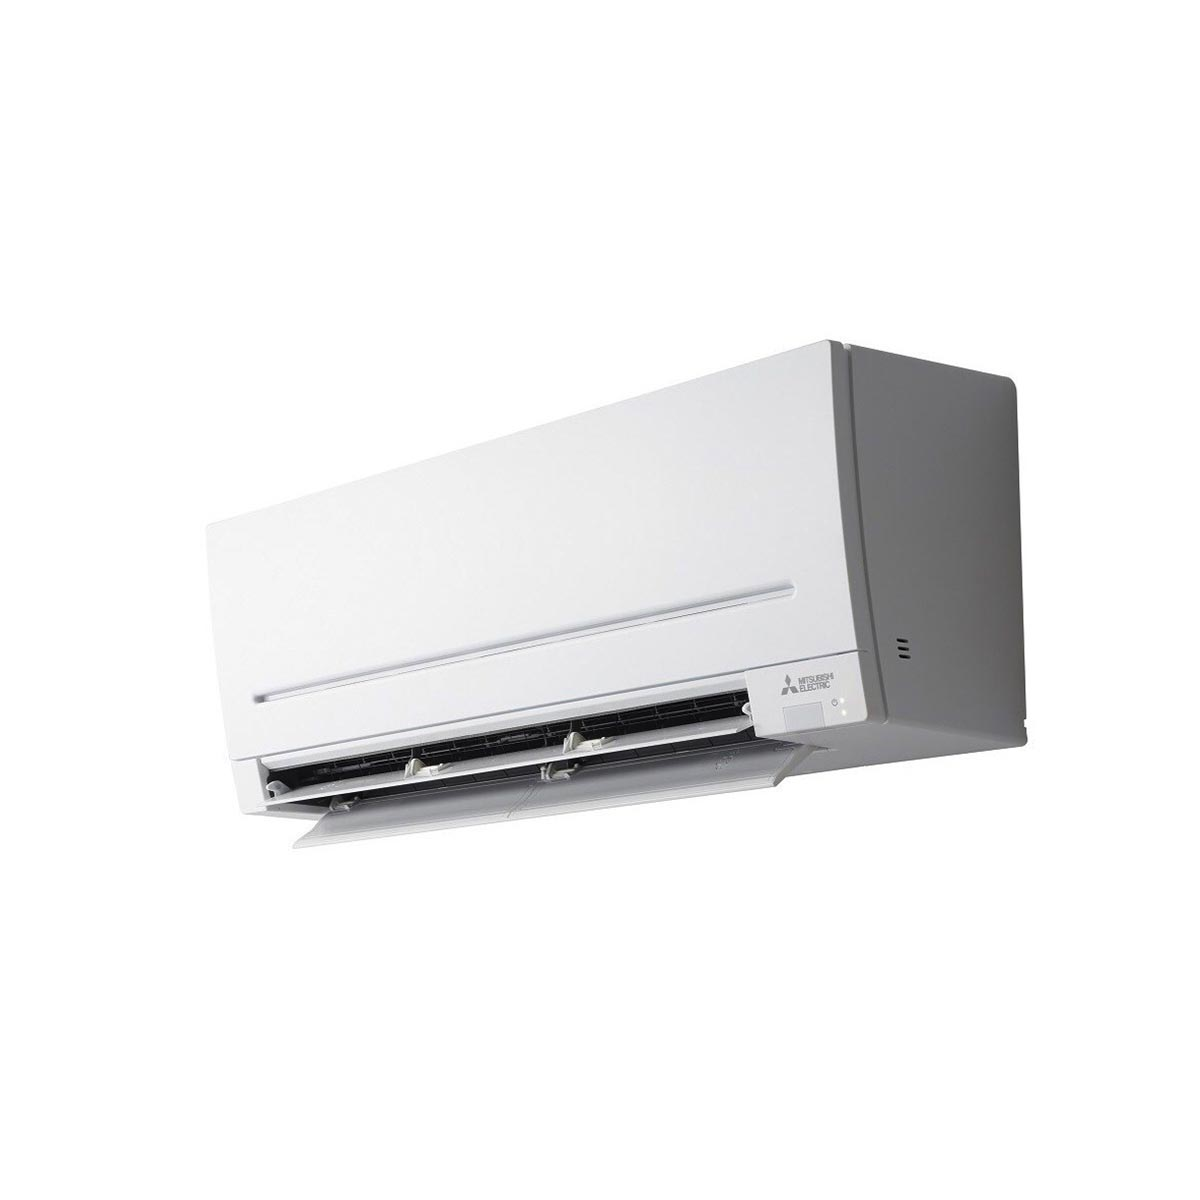 At Sydney air conditioning we make it easy to install your new split system at air-conditioner.